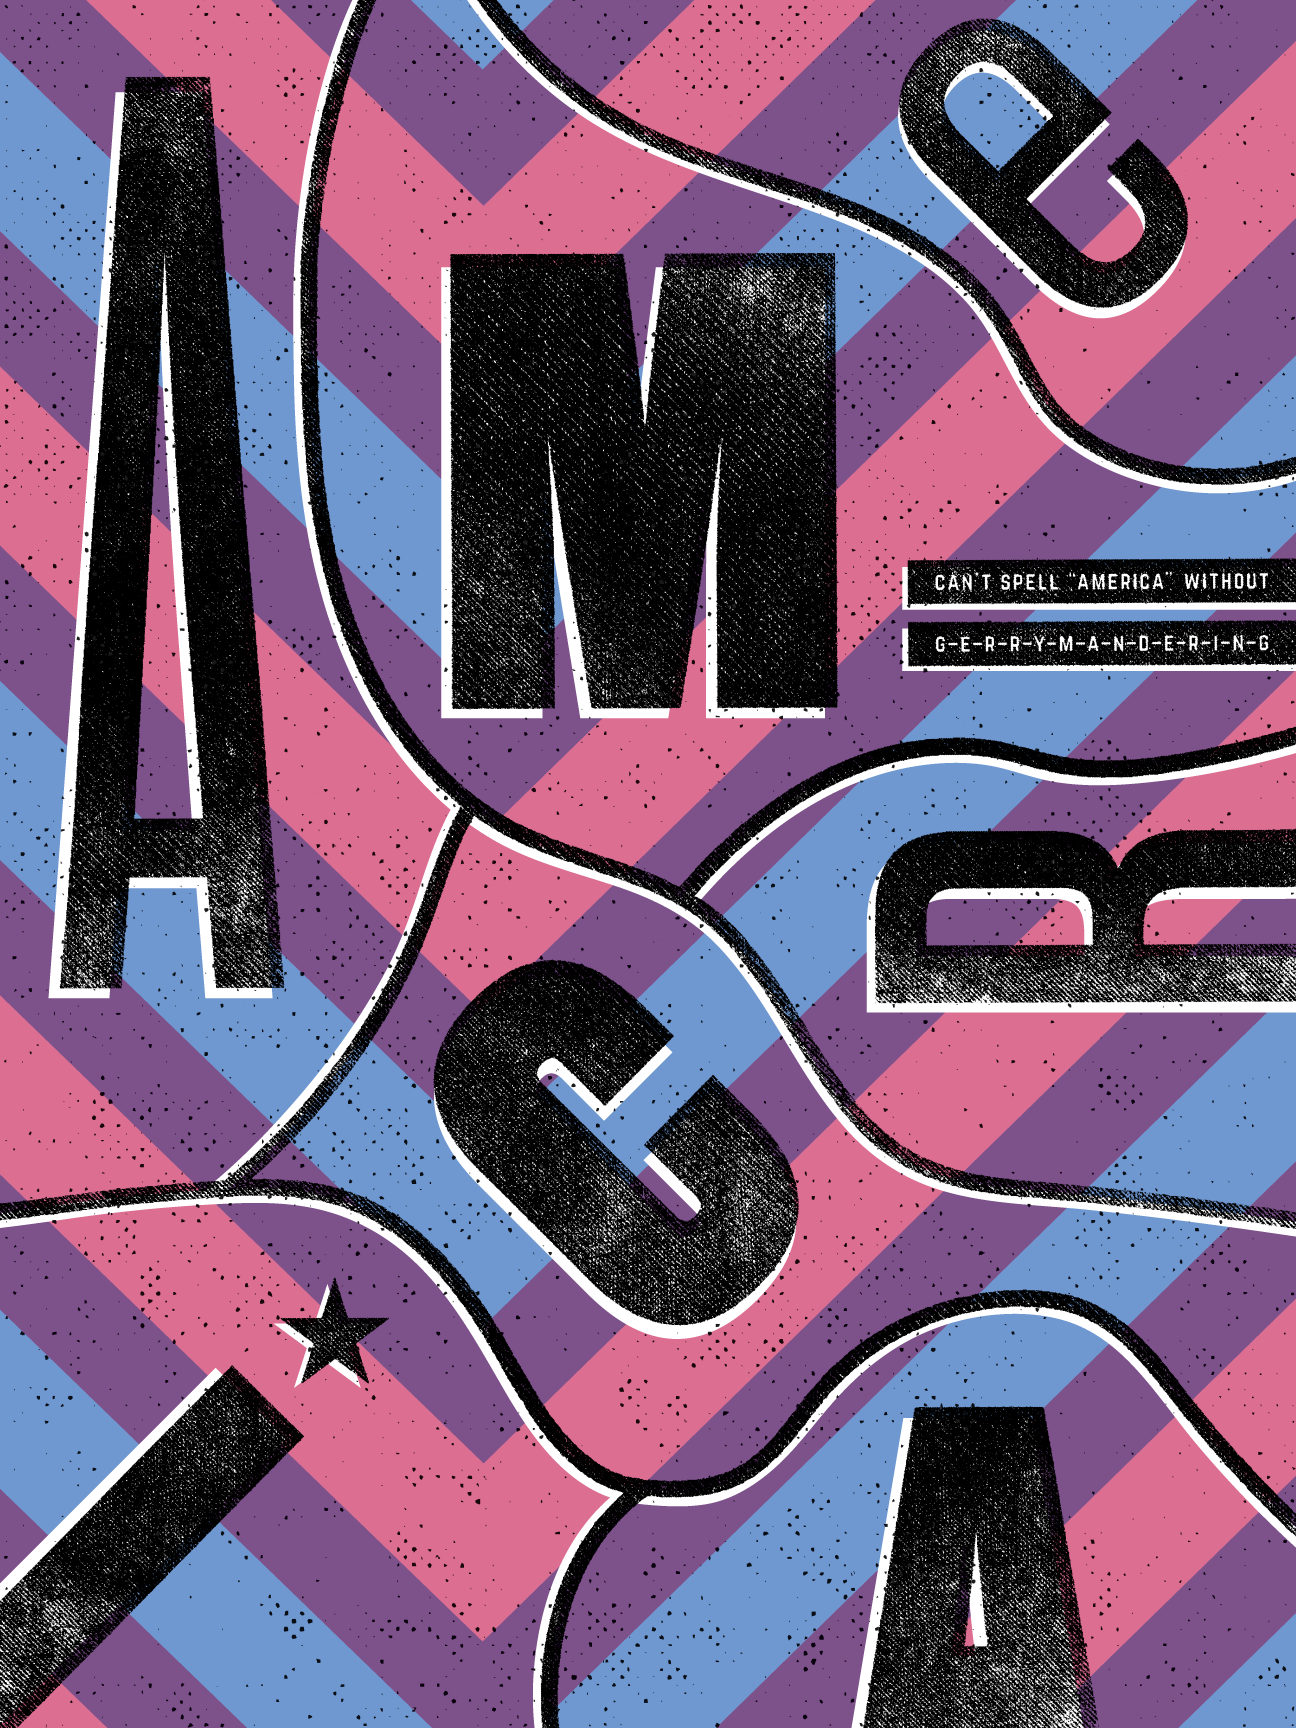 A-M-E-R-I-C-A by Justin Kemerling